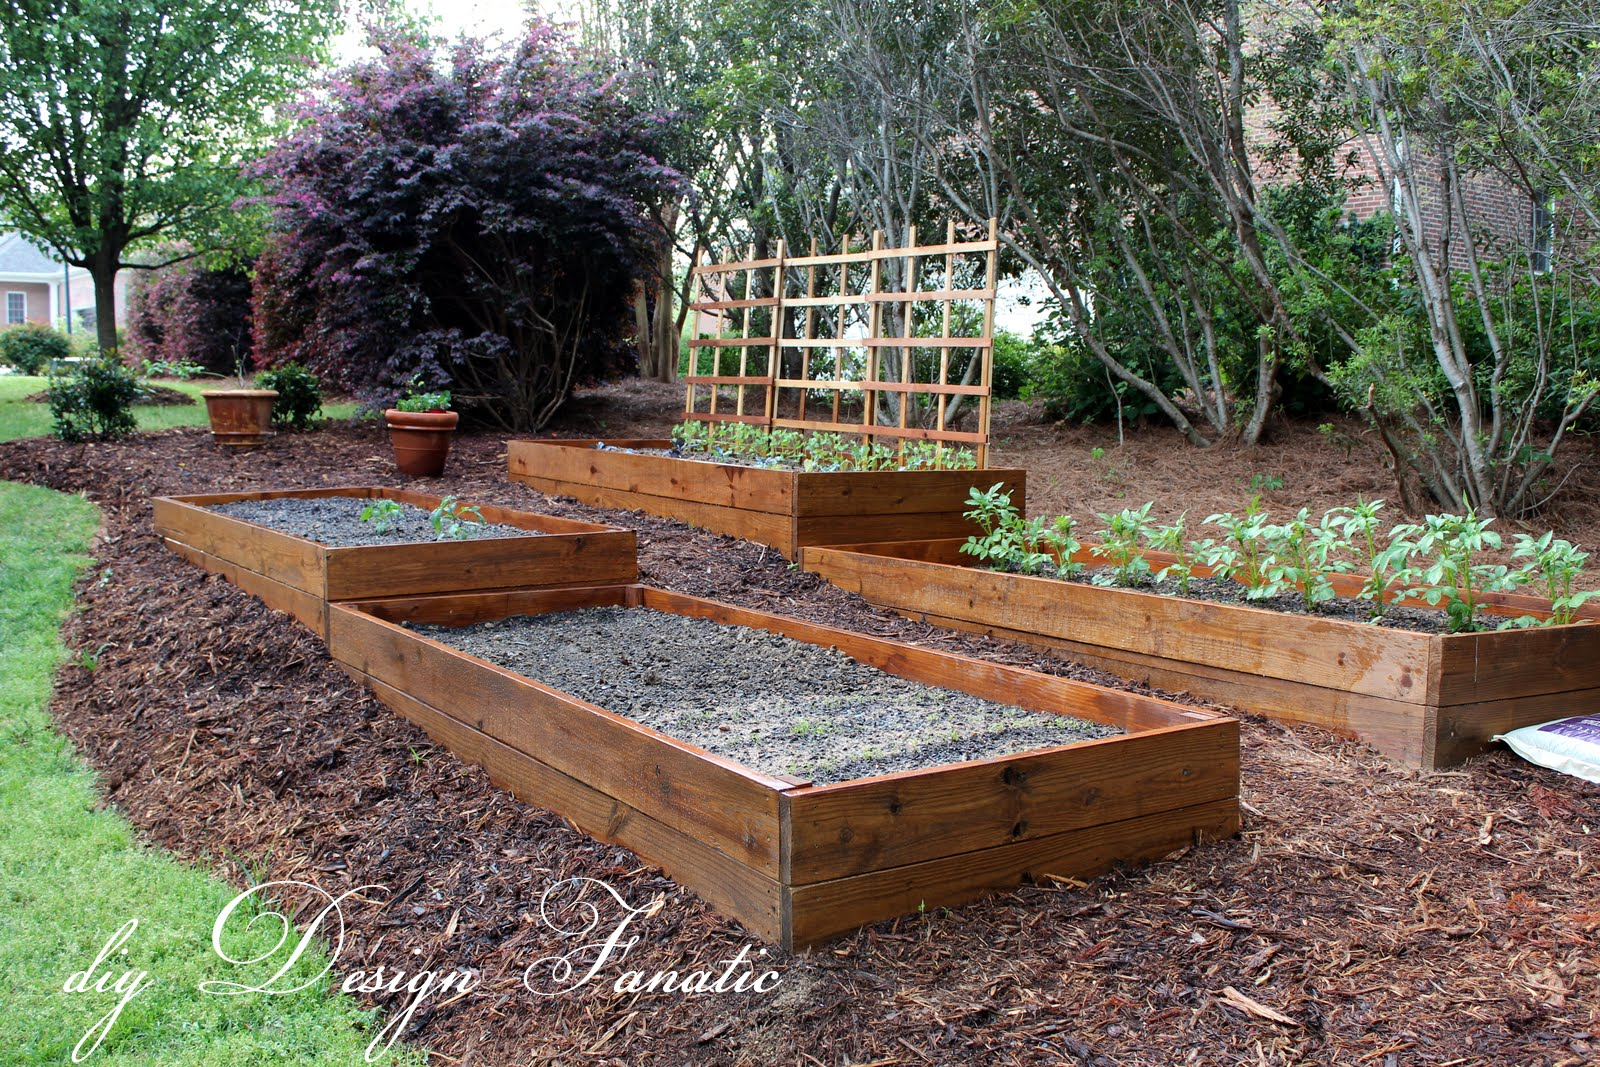 panhandle gardening hort raised the bed tsms beds garden in